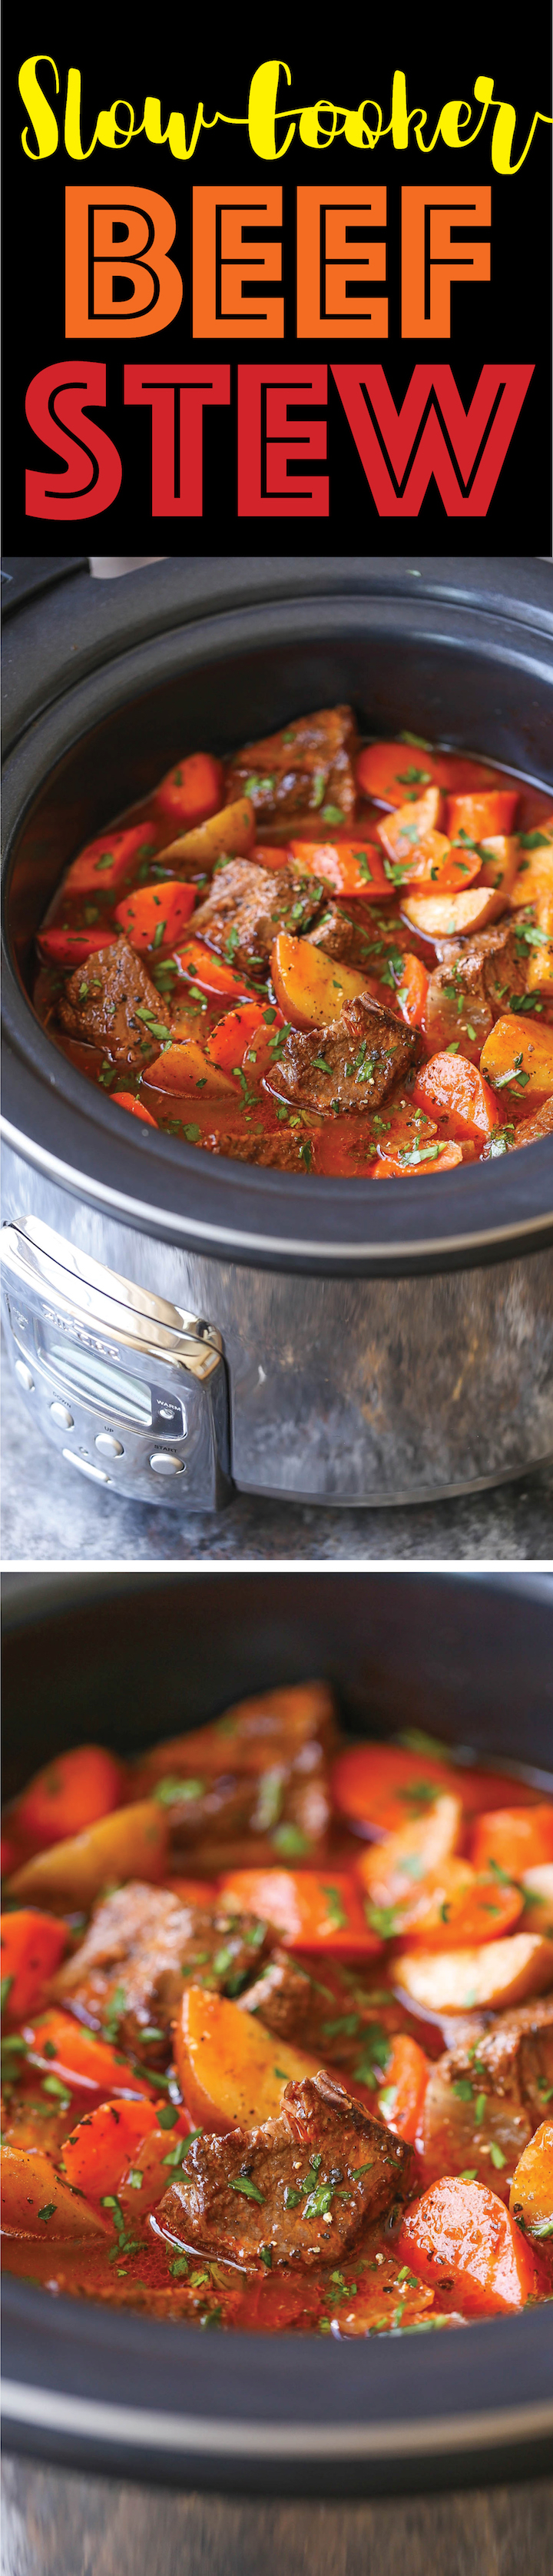 Slow Cooker Beef Stew Damn Delicious